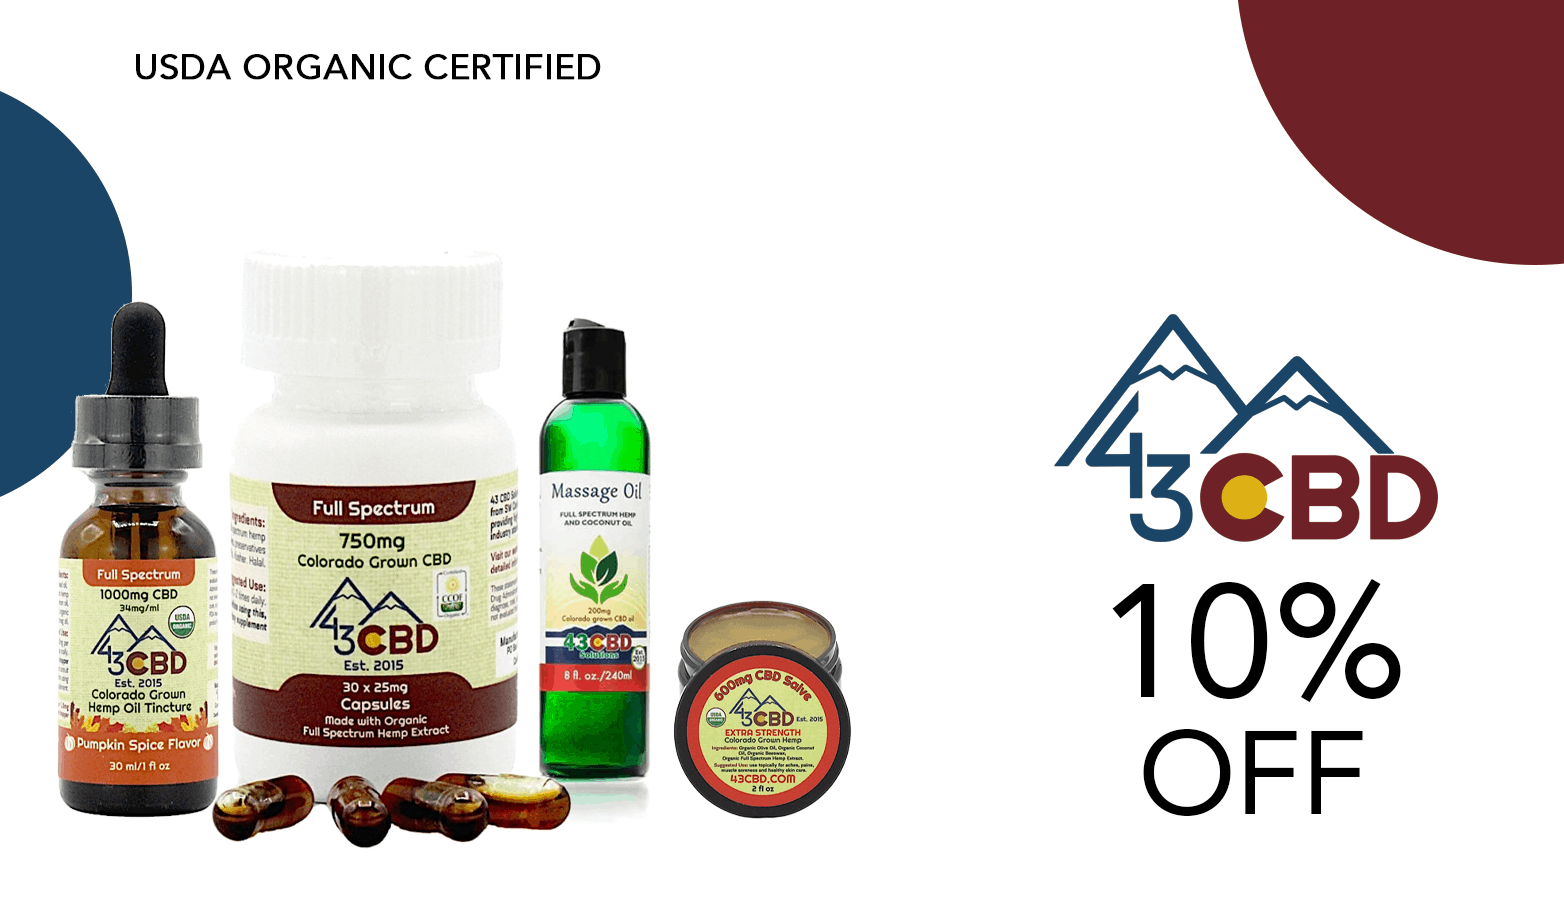 43 CBD Solutions Coupons Offer Website